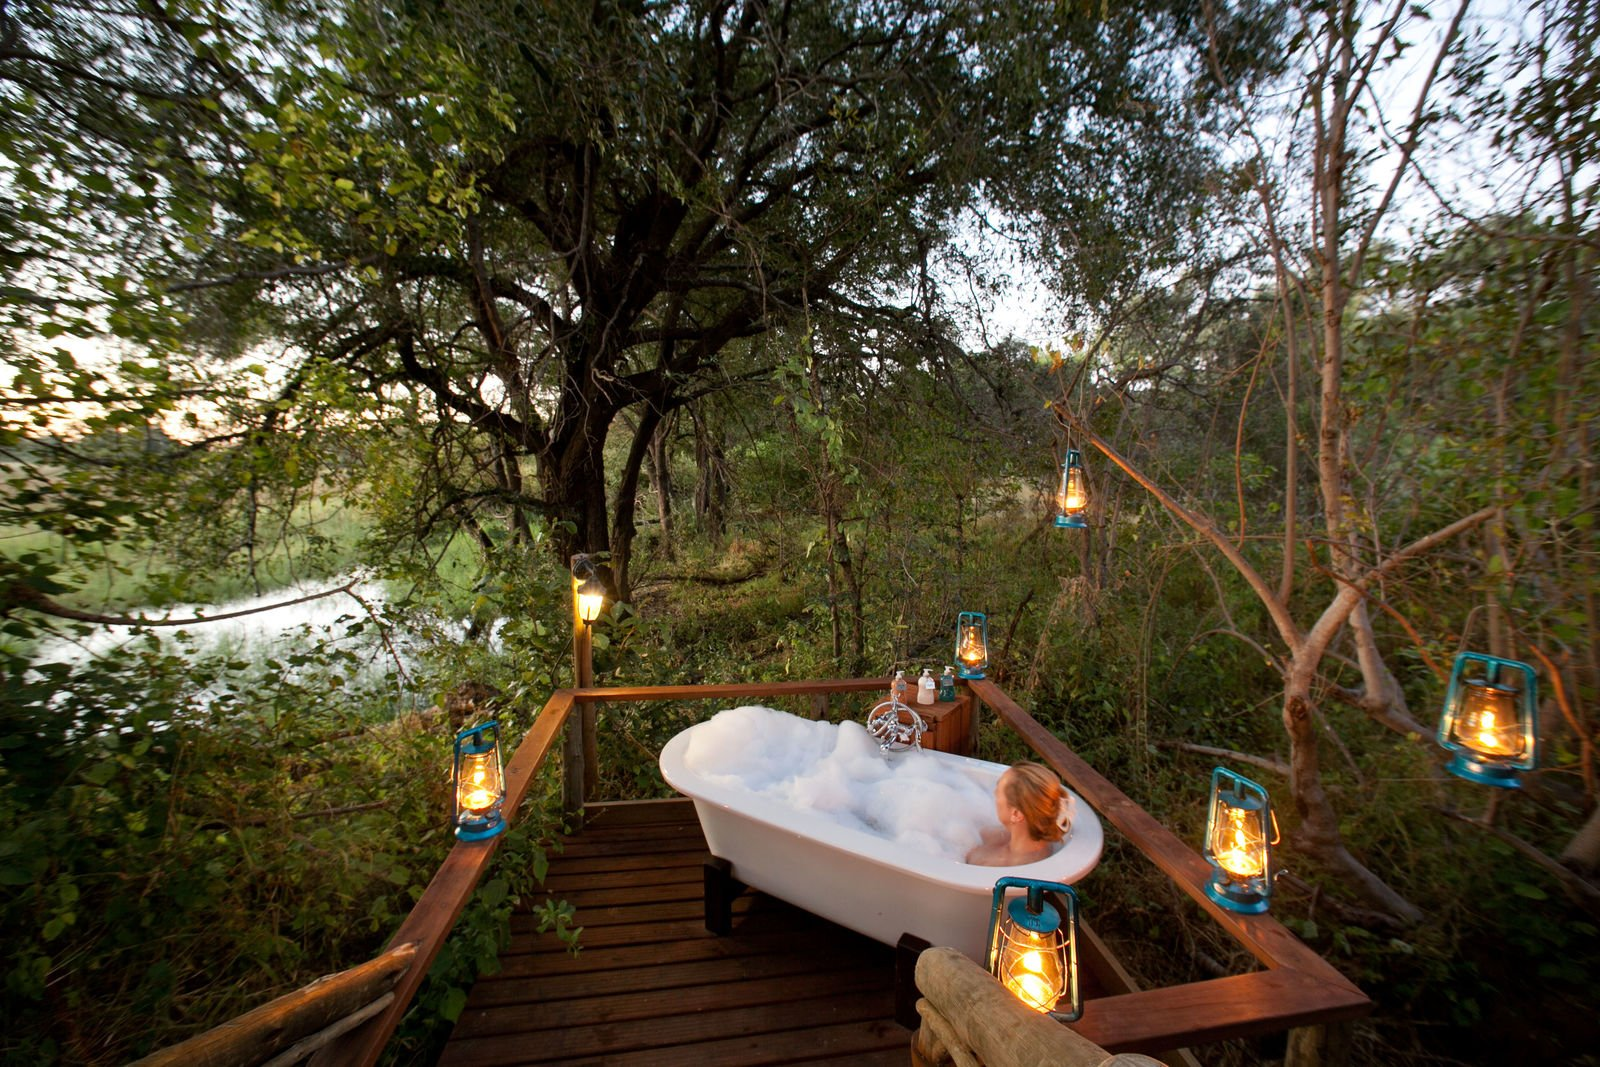 The Honeymoon Suite at Pom Pom Camp features a star bath